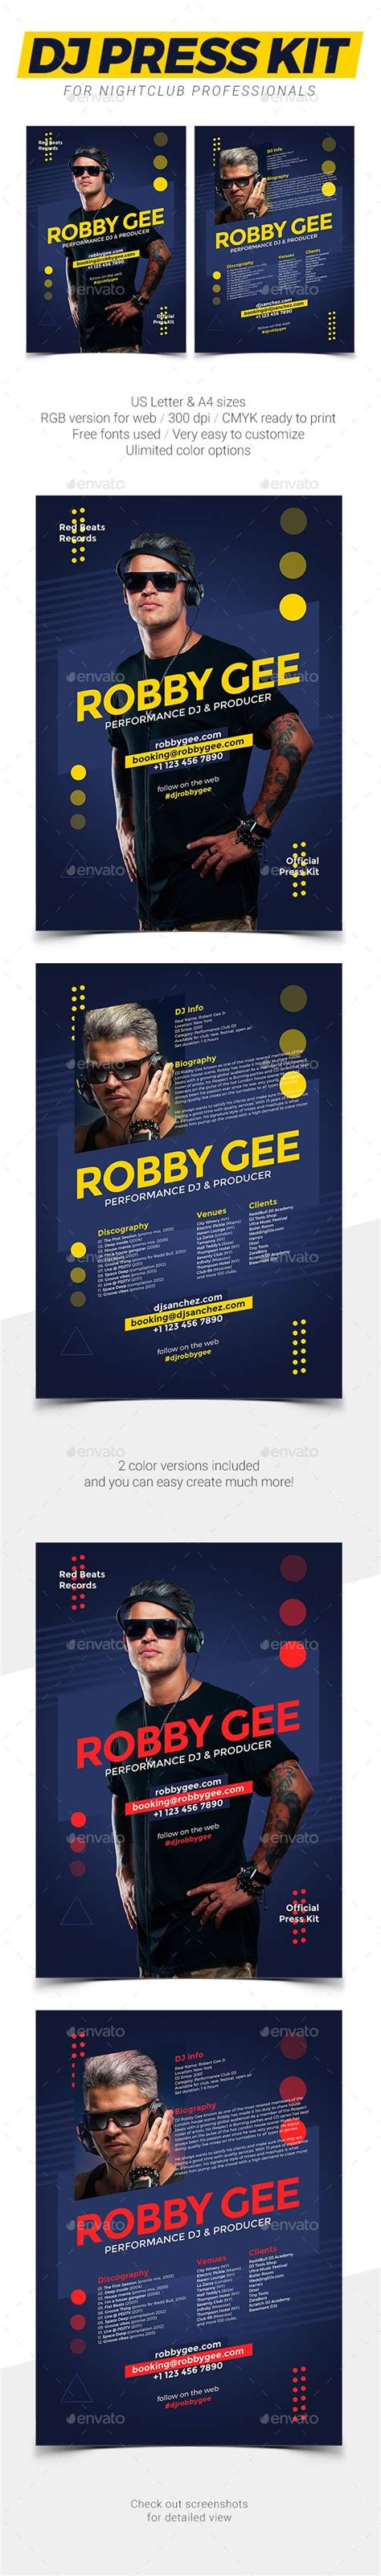 1000 Images About Dj Press Kit And Dj Resume Templates On Pinterest Resume Template Download Free Press Kit Template Psd